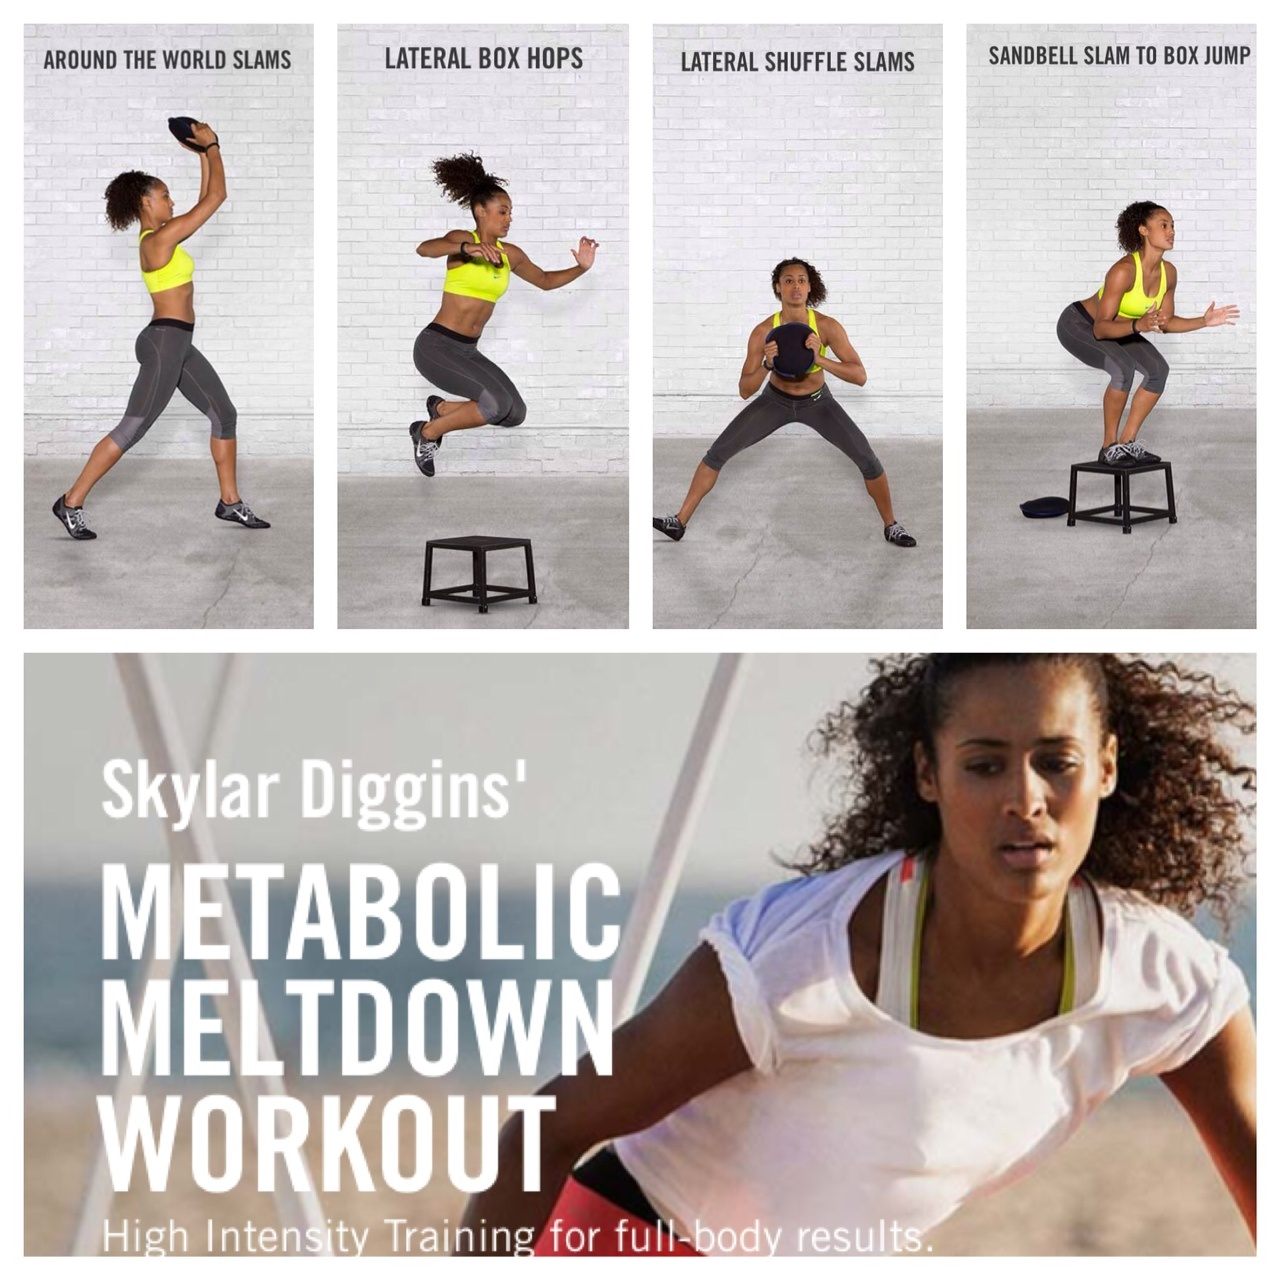 Skylar Diggins' HIIT Workout Now on Nike+ Training Club